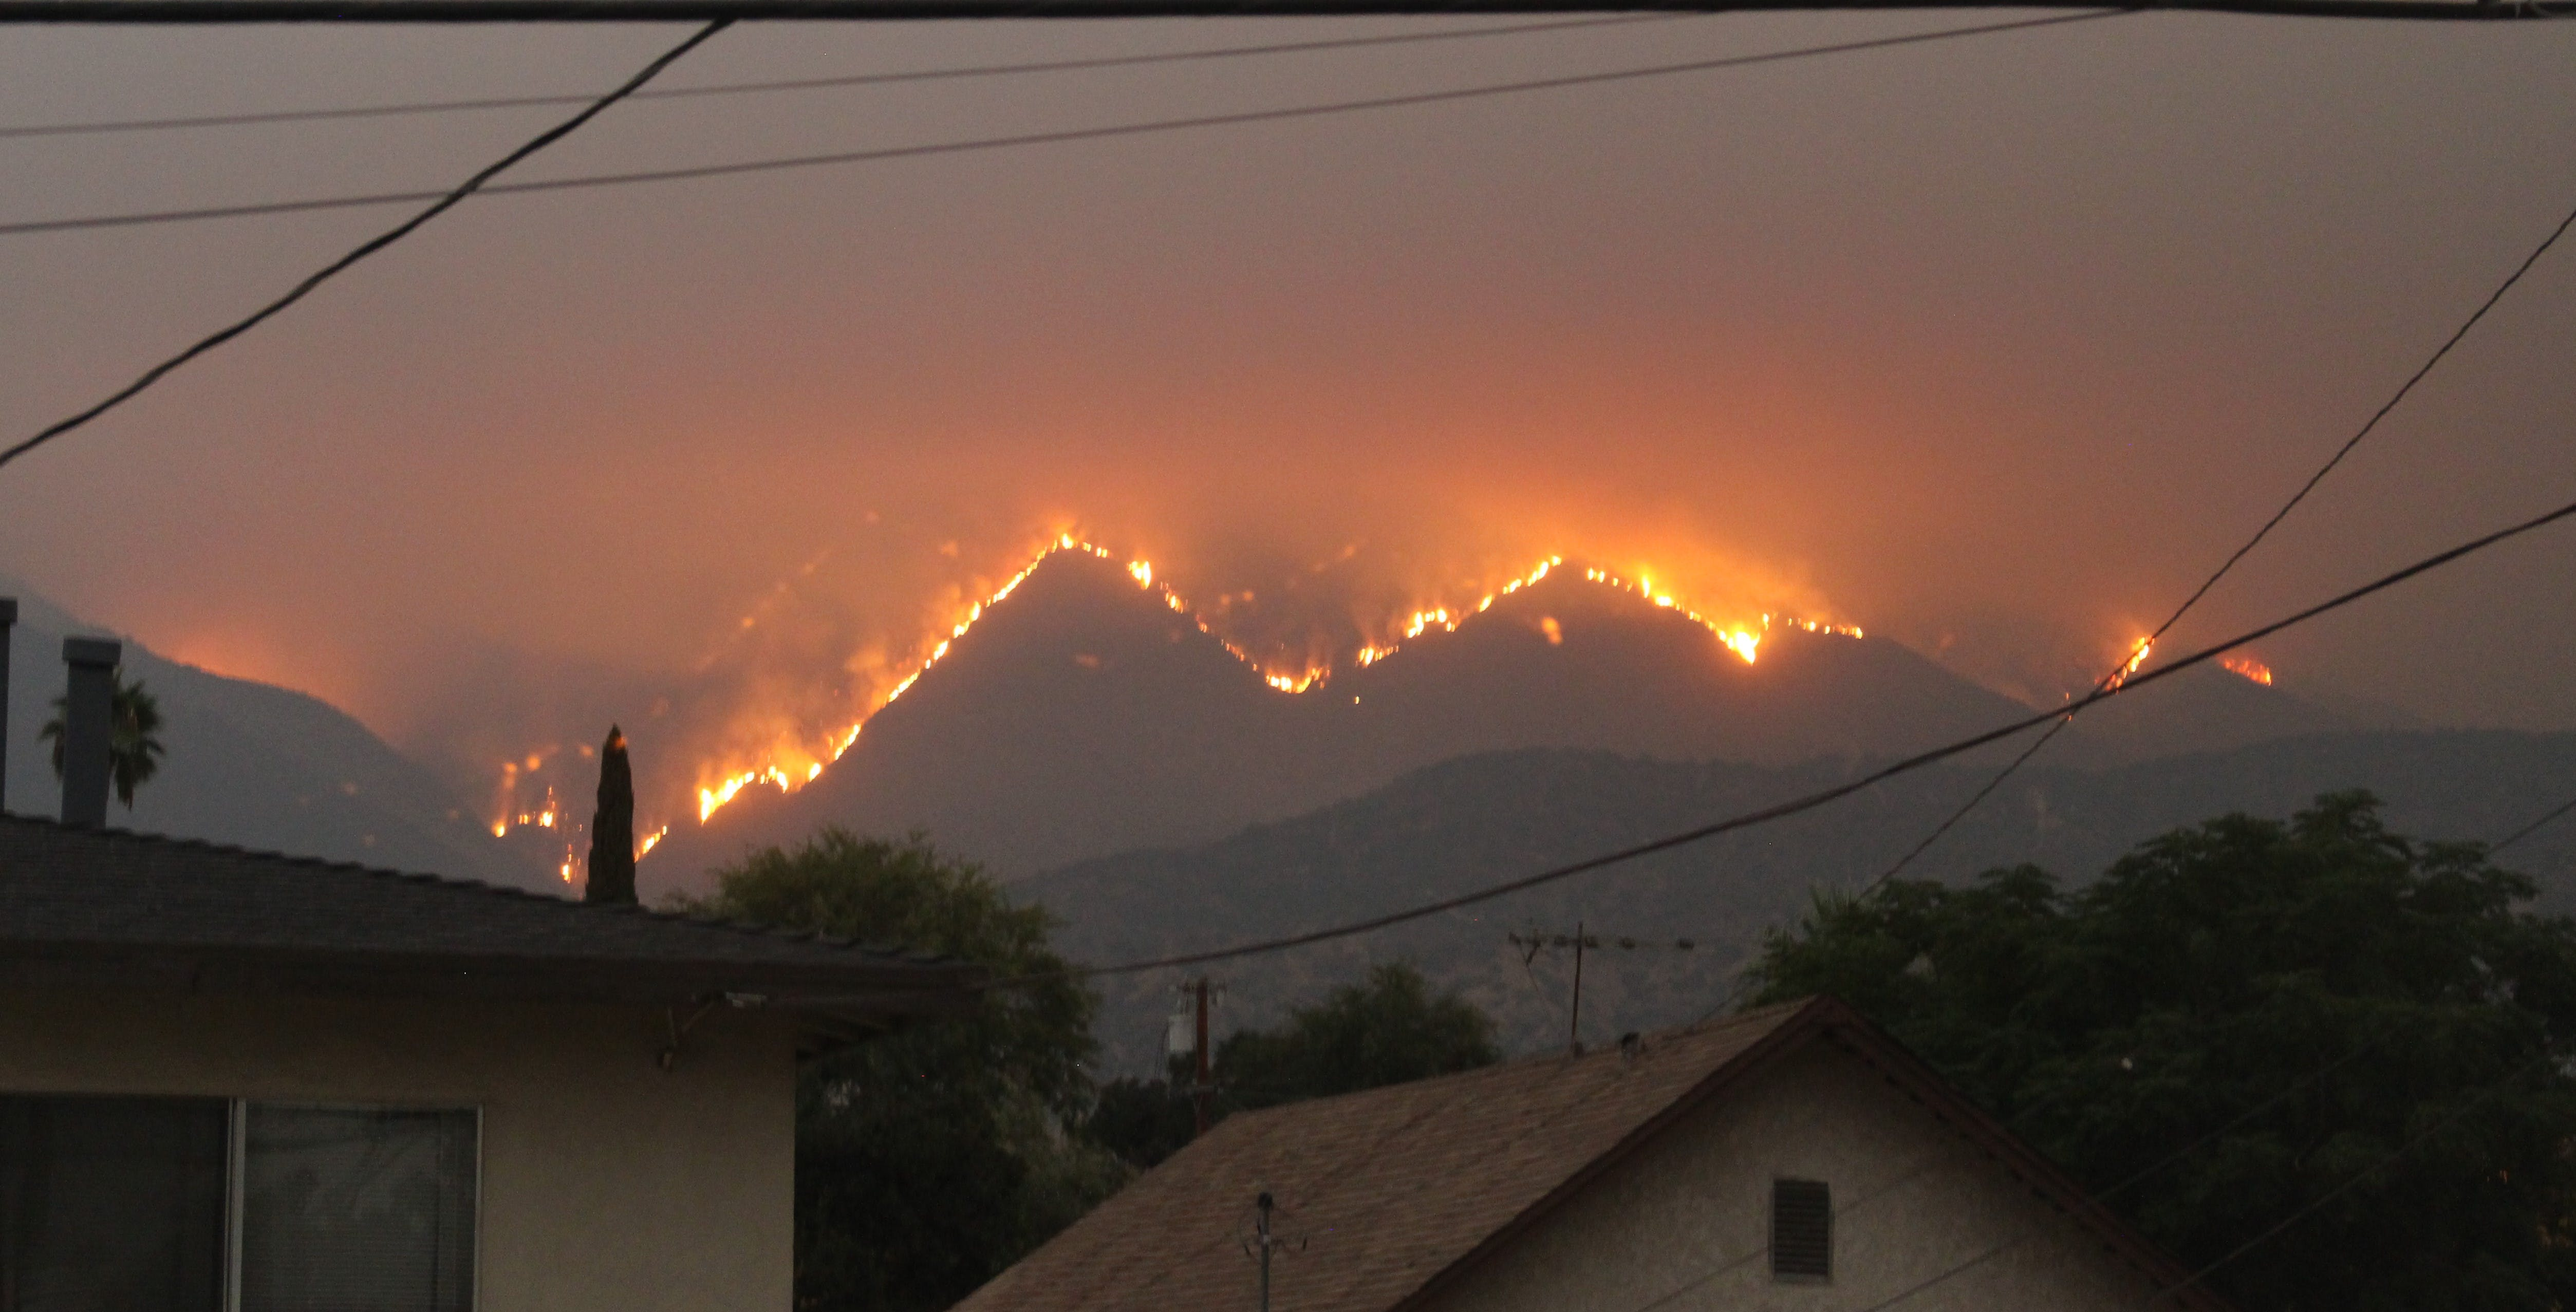 Bobcat Fire view from a home in Monrovia, CA, September 10, 2020